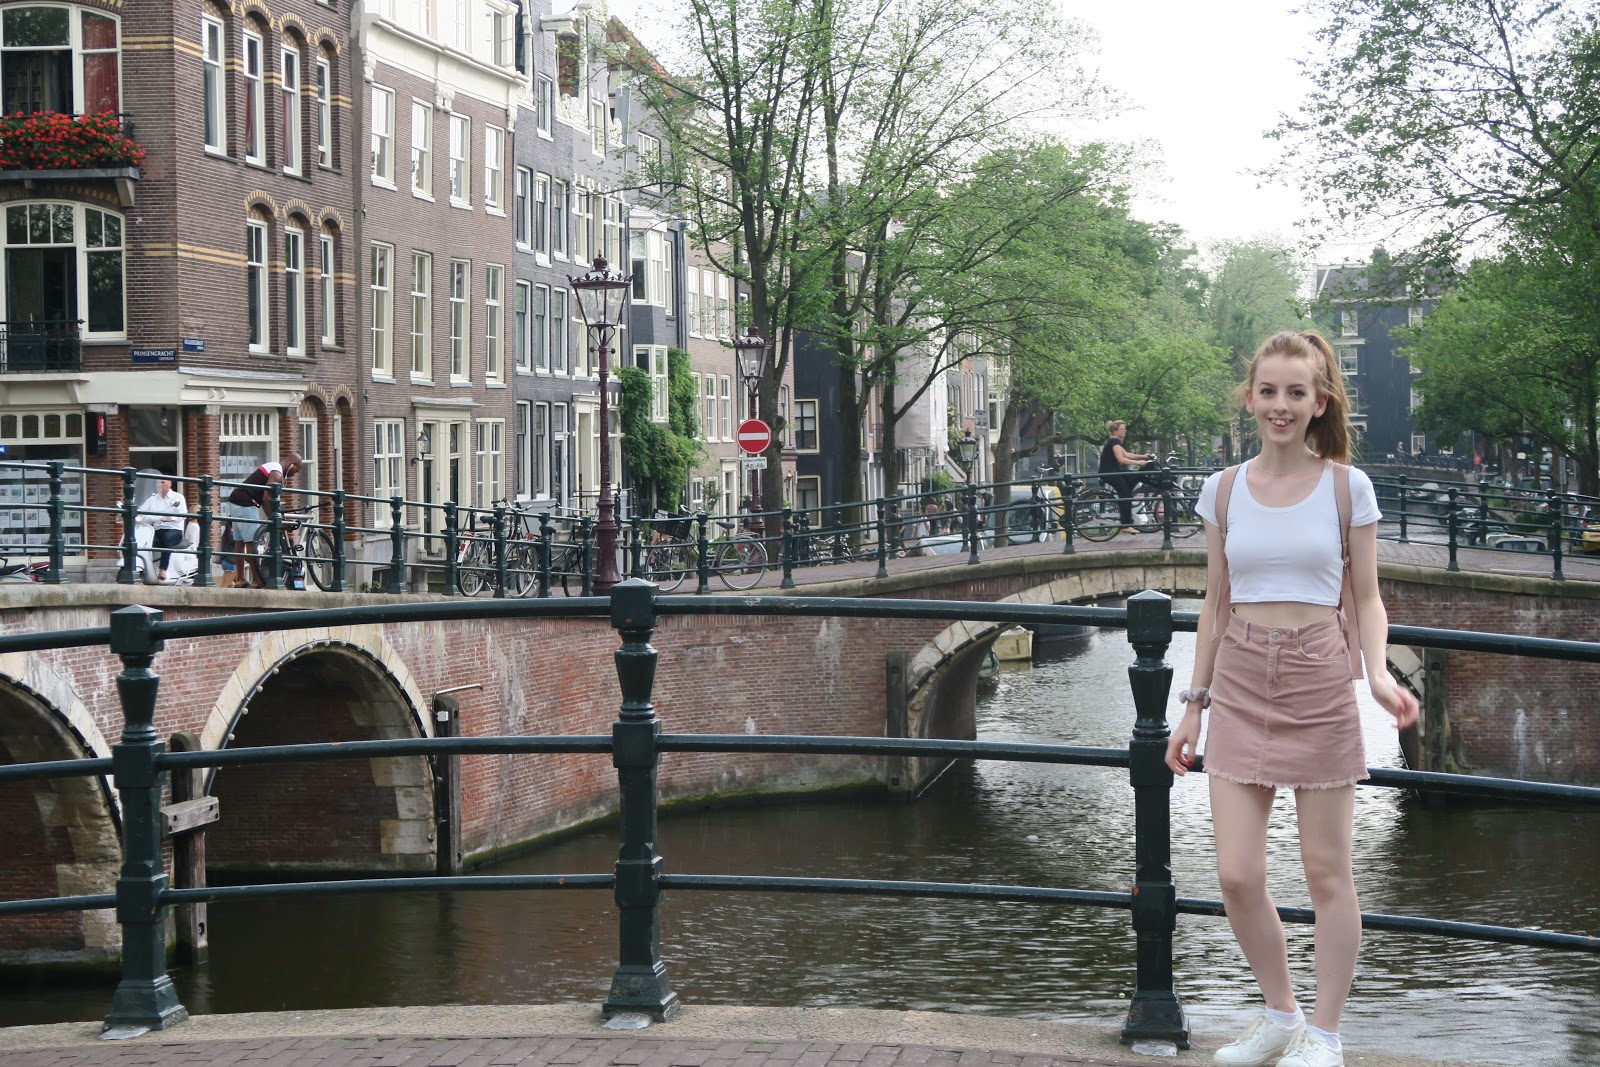 Me in Amsterdam